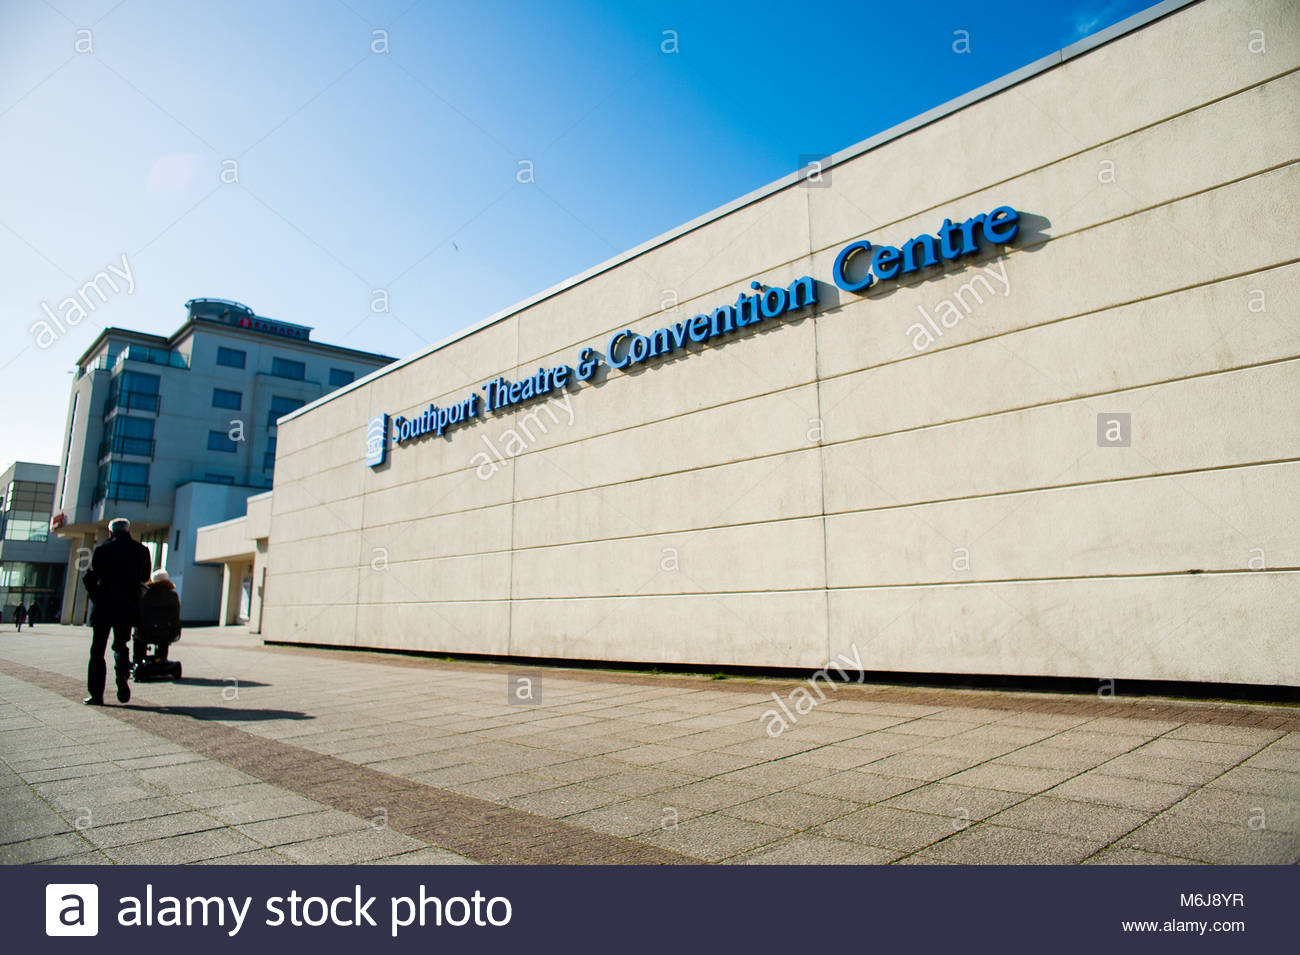 Southport Theatre & Convention Centre. The STCC is a Theatre and Conference centre for shows, trade exhibitions, Stock Photo